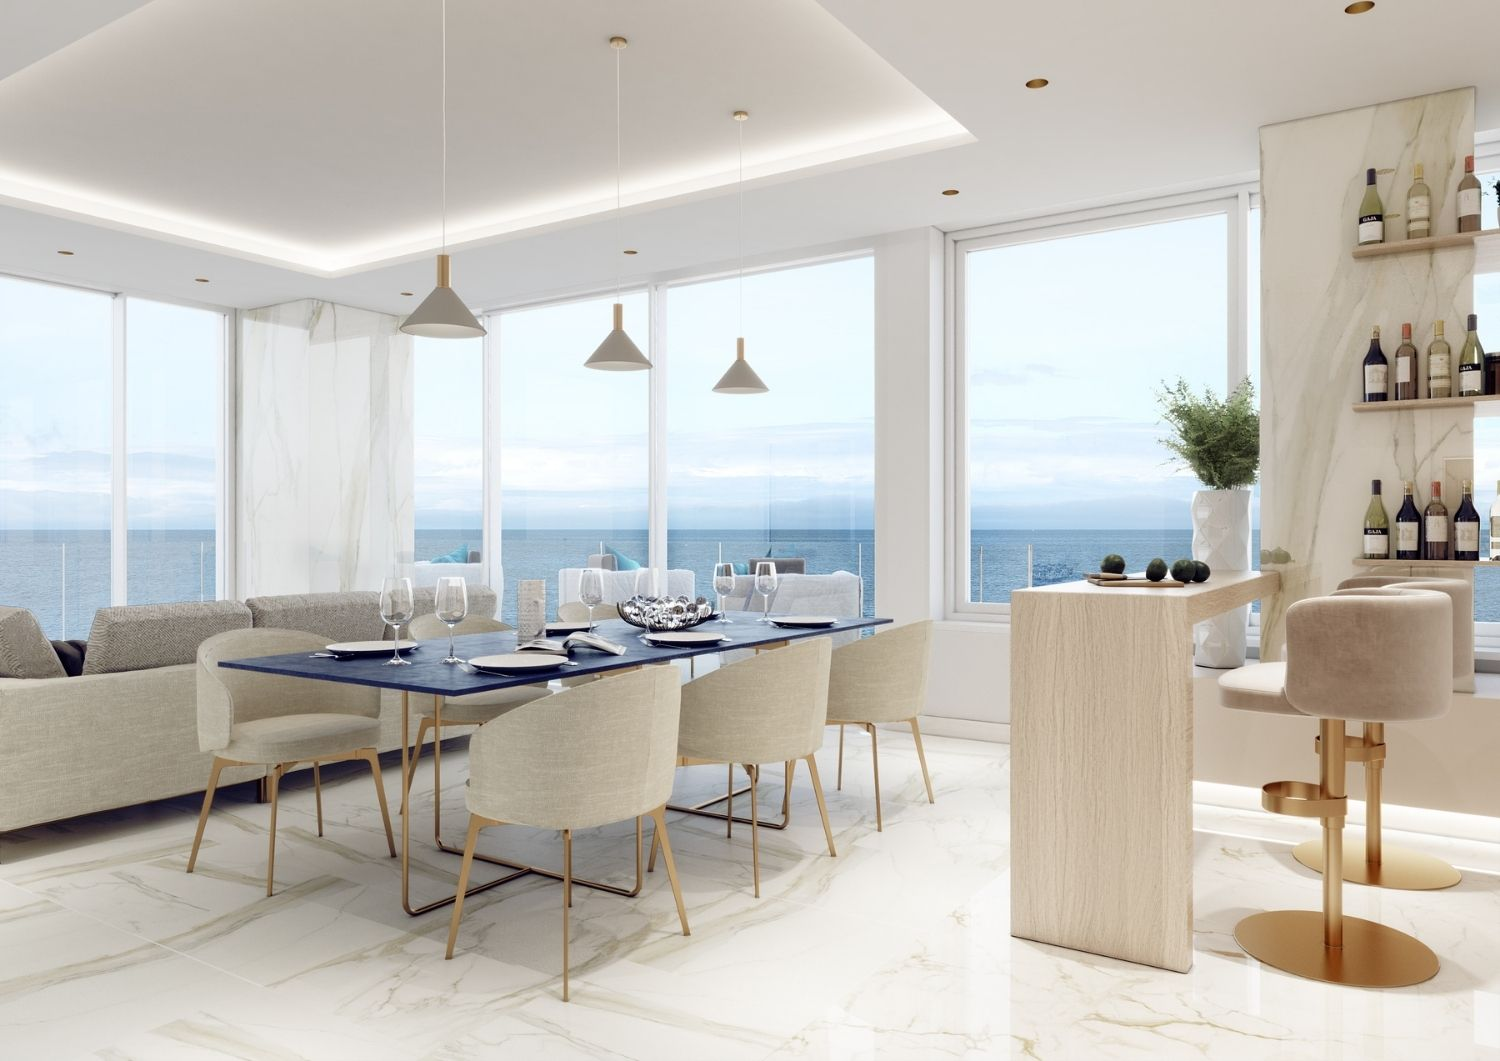 An elegant living room to  join the amazing view of the Mediterranean Sea. Studio D73